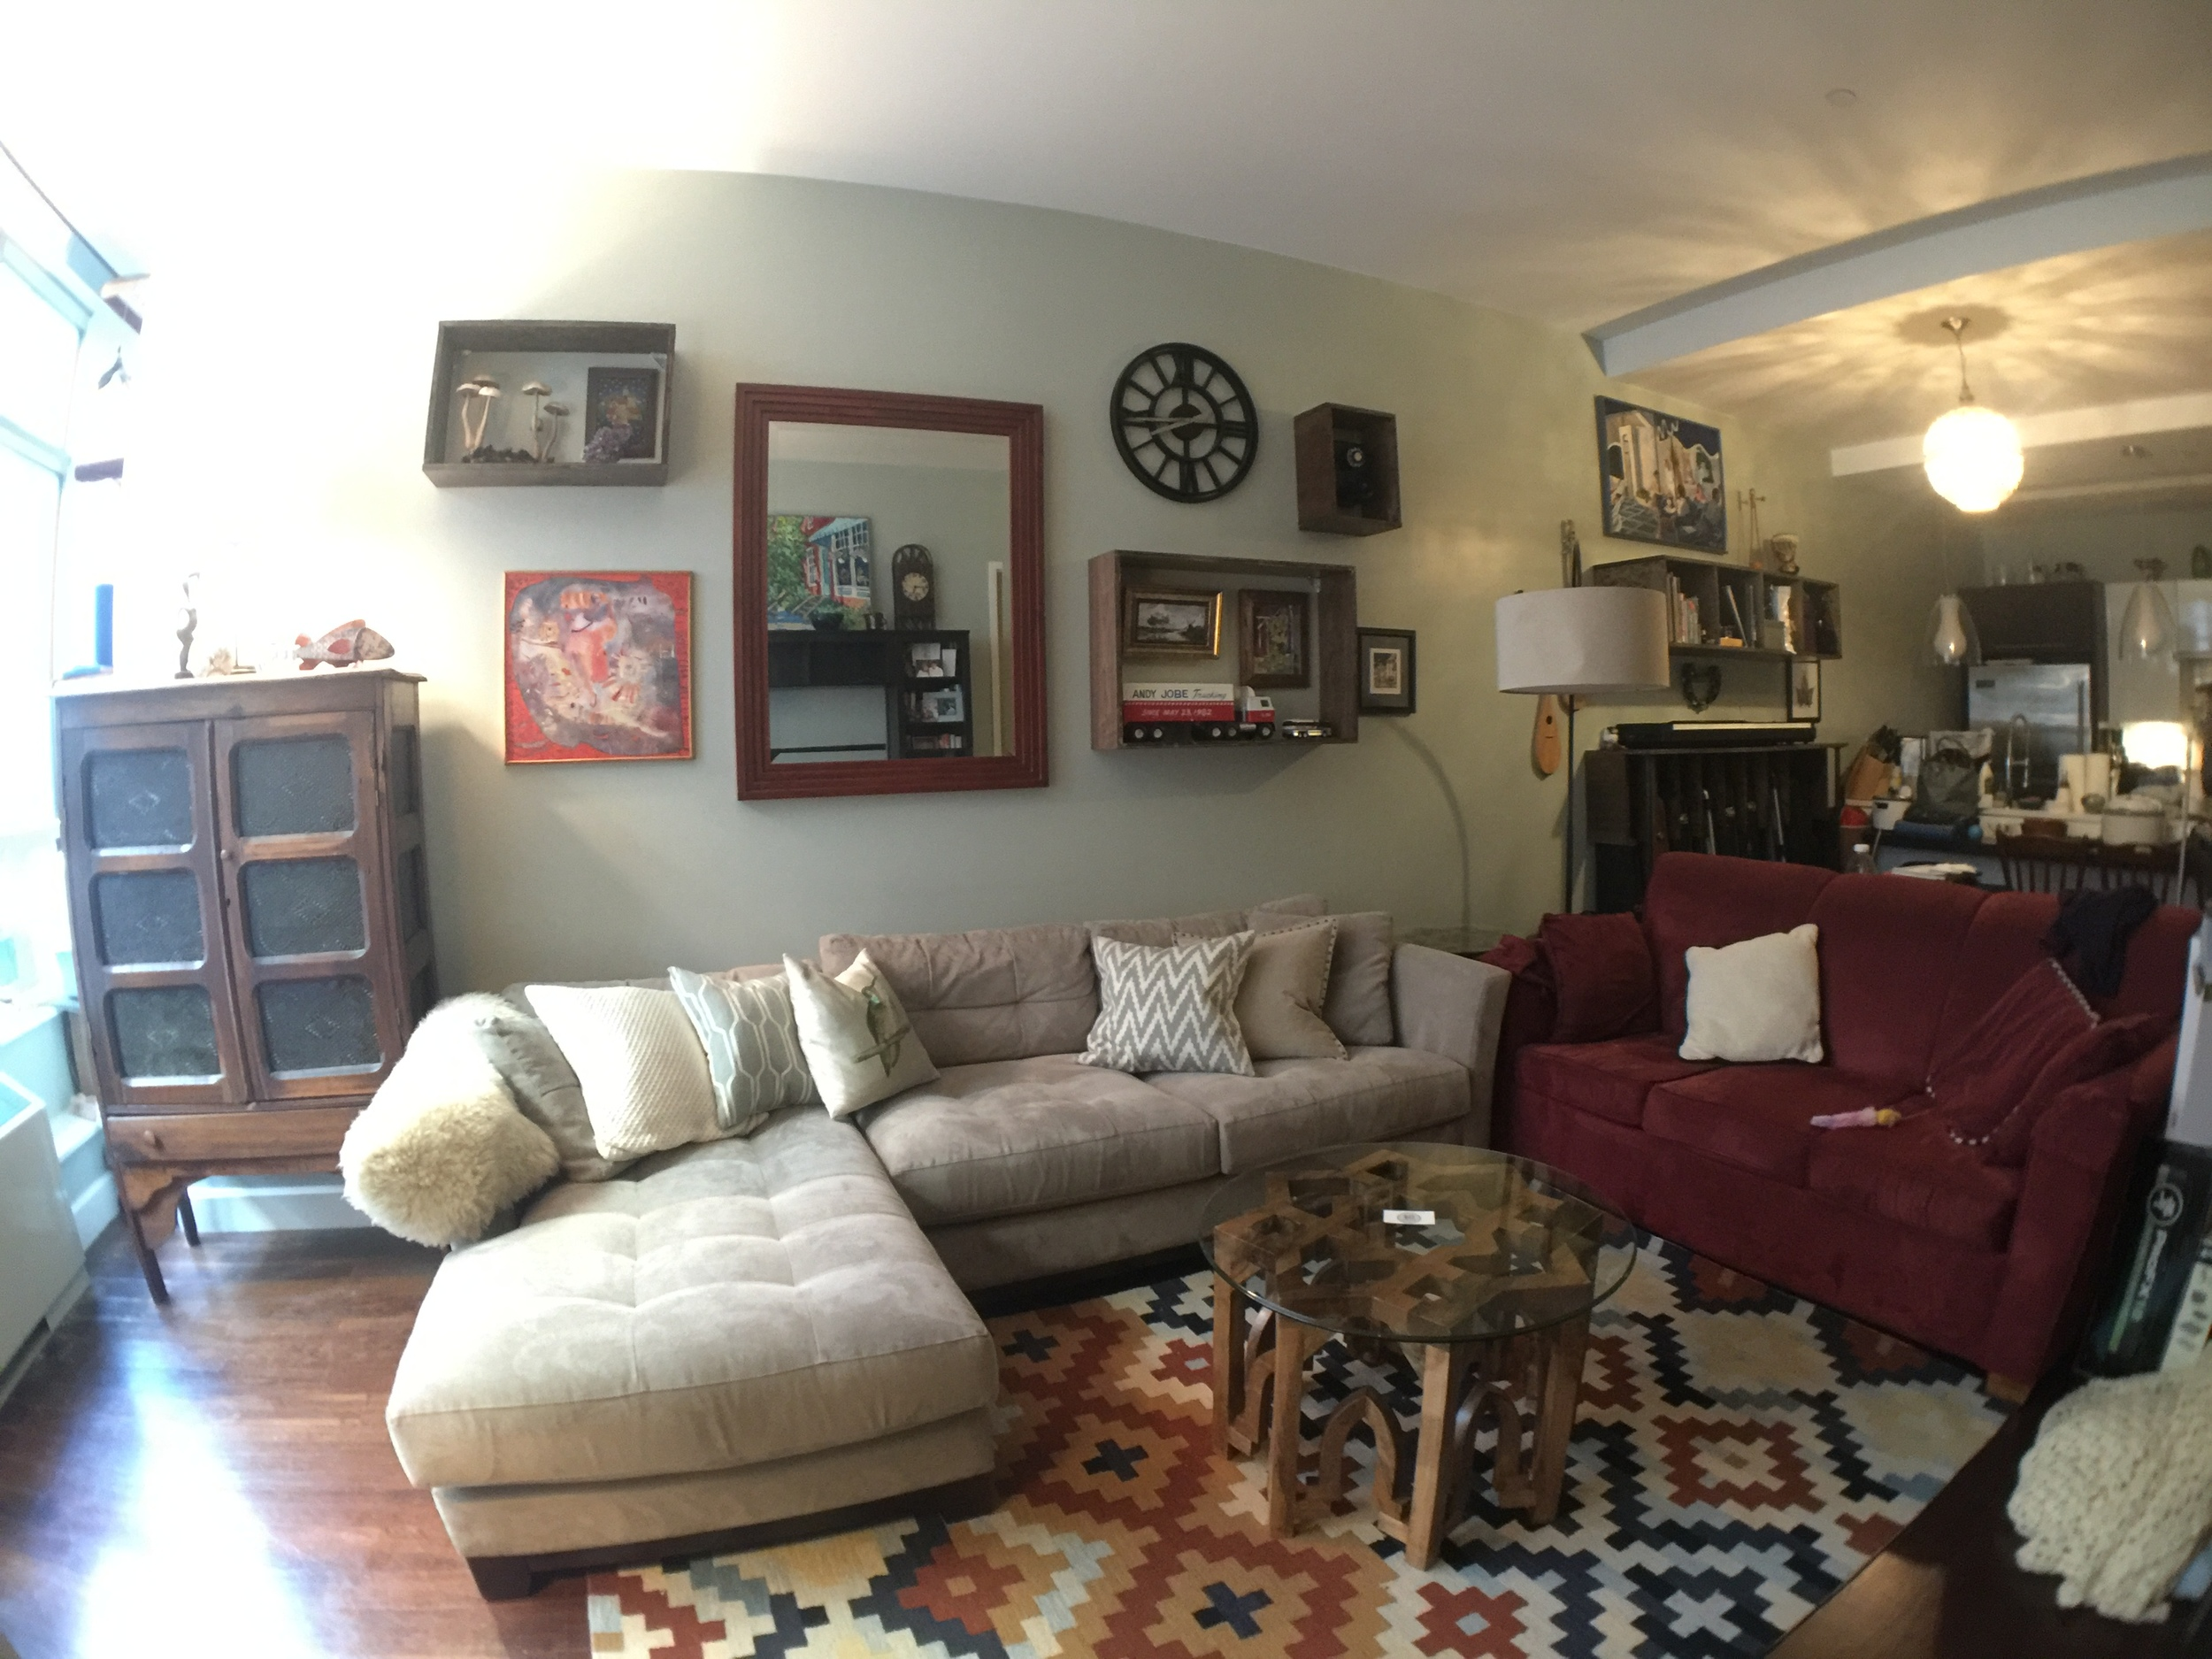 Shadow box shelving was added to this gallery wall to display the clients most prized possessions. Below is a video of us putting it together. Mixing the shelves and art created a fun eclectic look while using the height of the ceilings to their fullest potential.